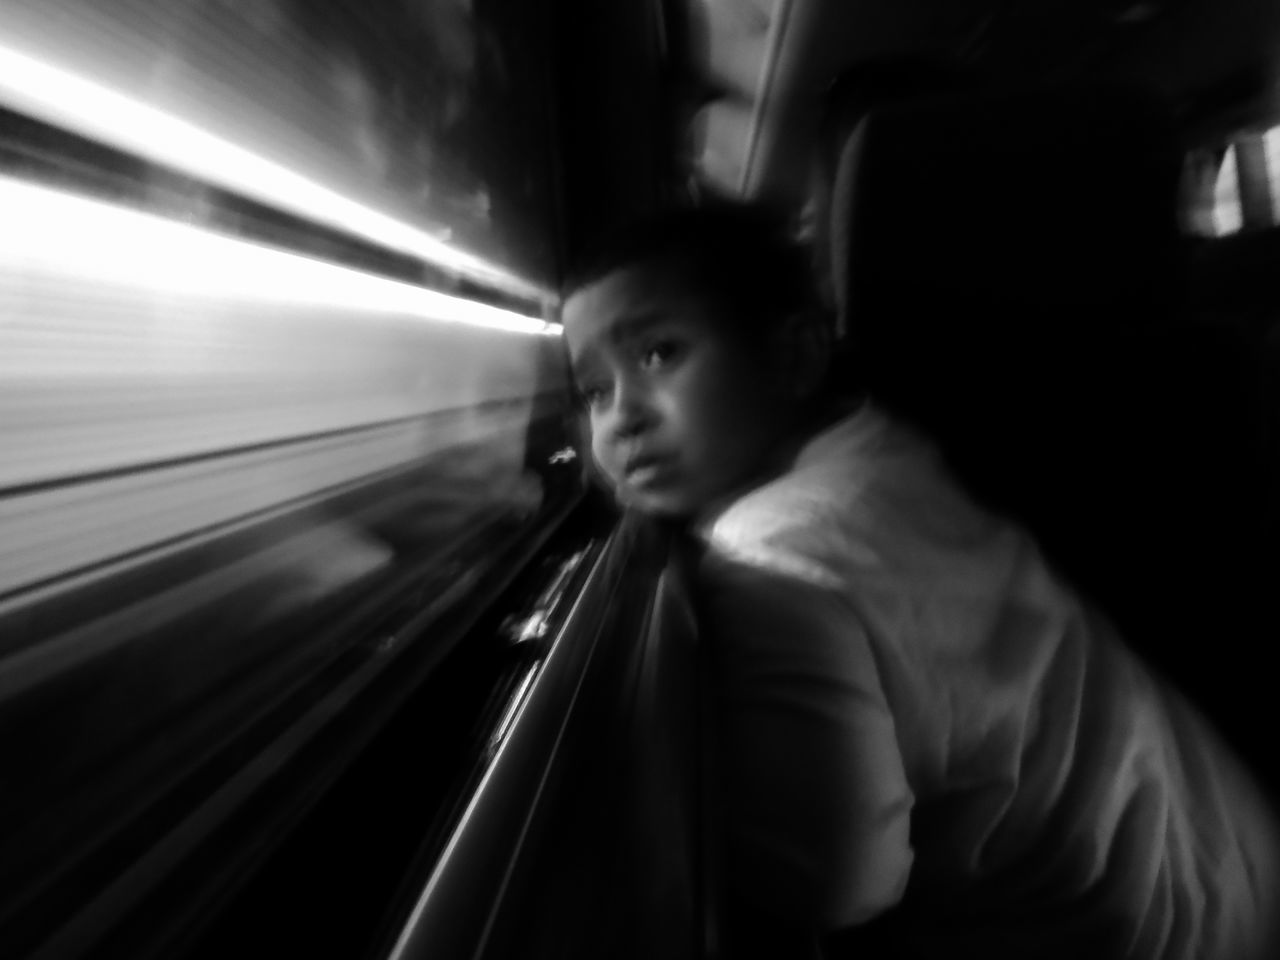 Curious Boy Looking At Light Trail Through Glass Window While Traveling In Bus